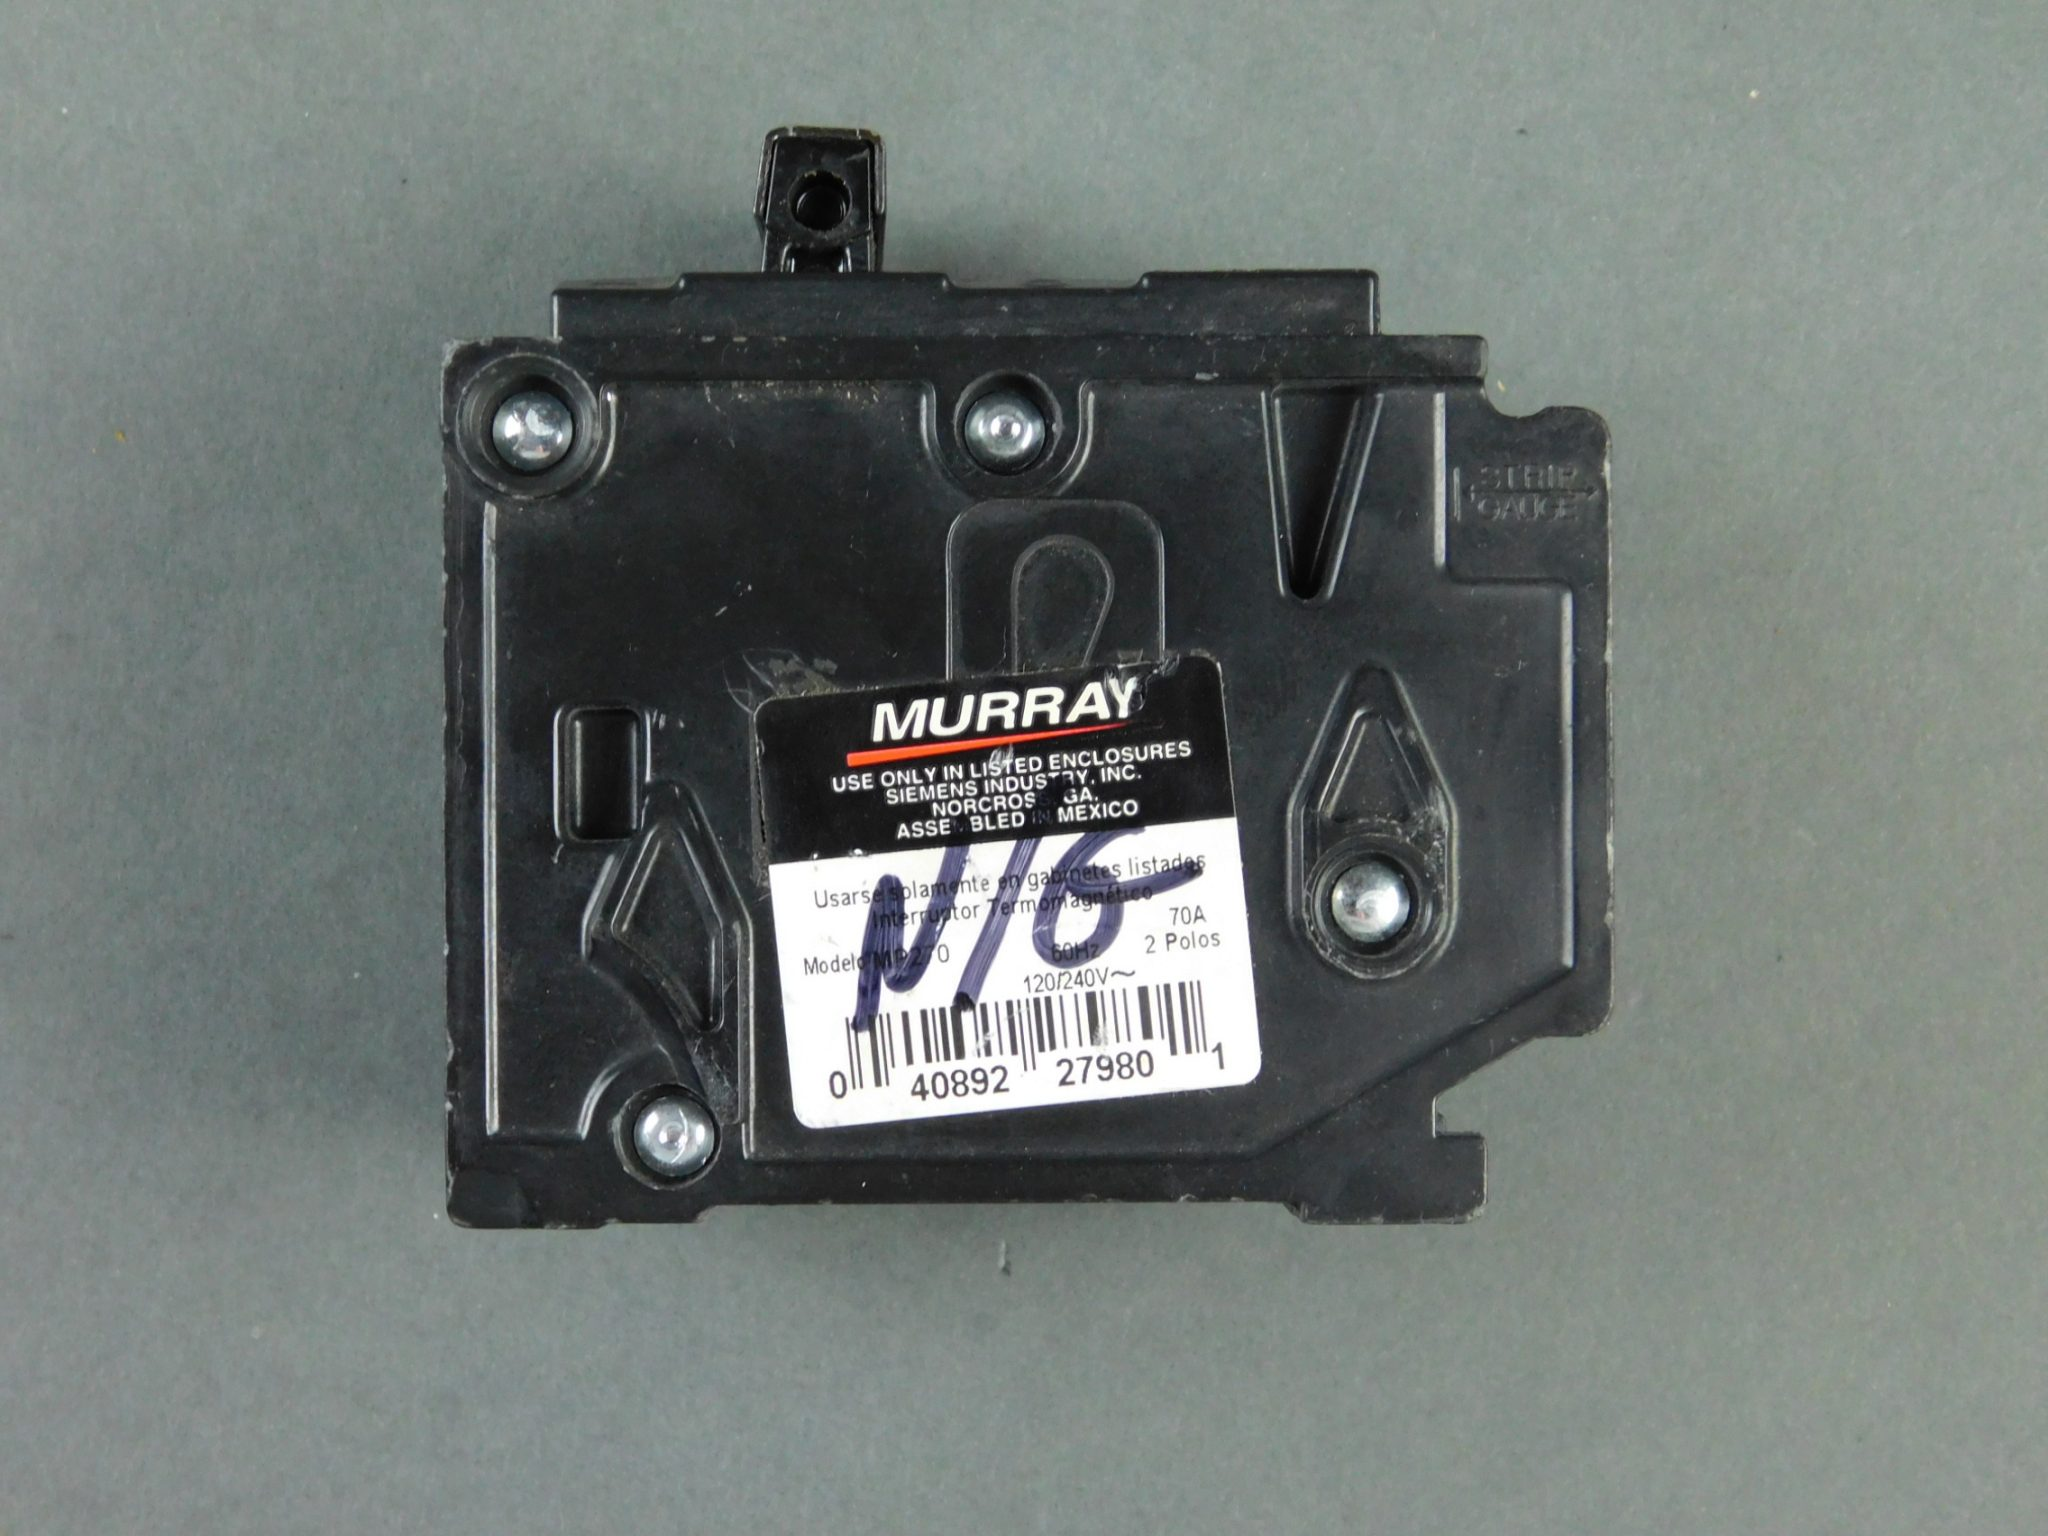 Murray MP270 70A Circuit Breaker, 2P 70 AMP 120/240V